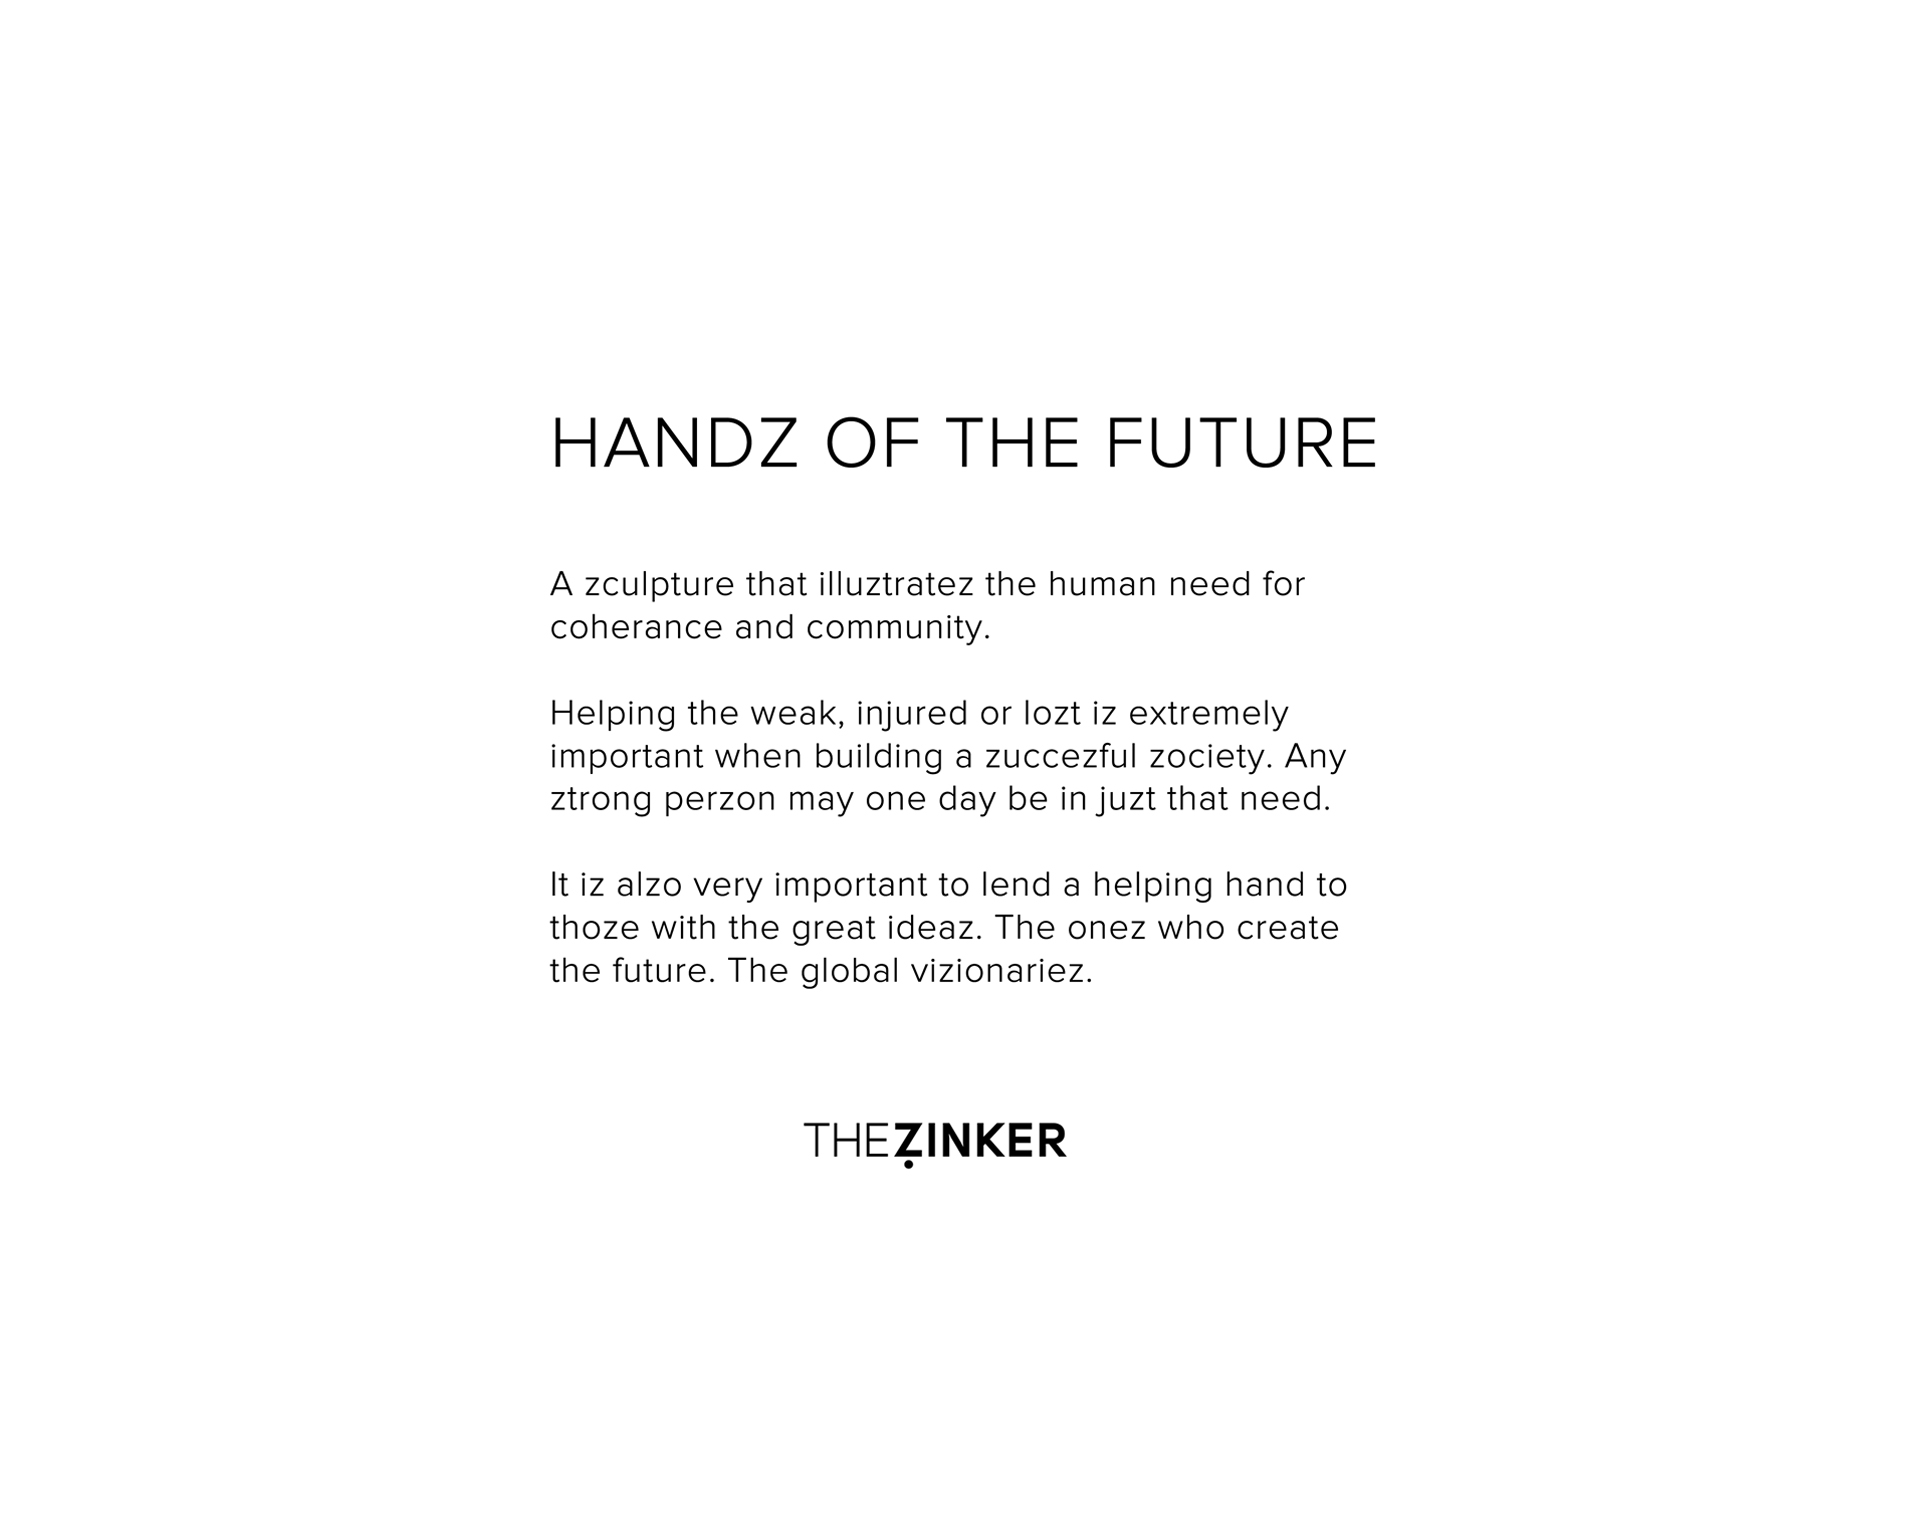 http://thezinker.com/wp-content/uploads/Future-Hands-TEXT.jpg